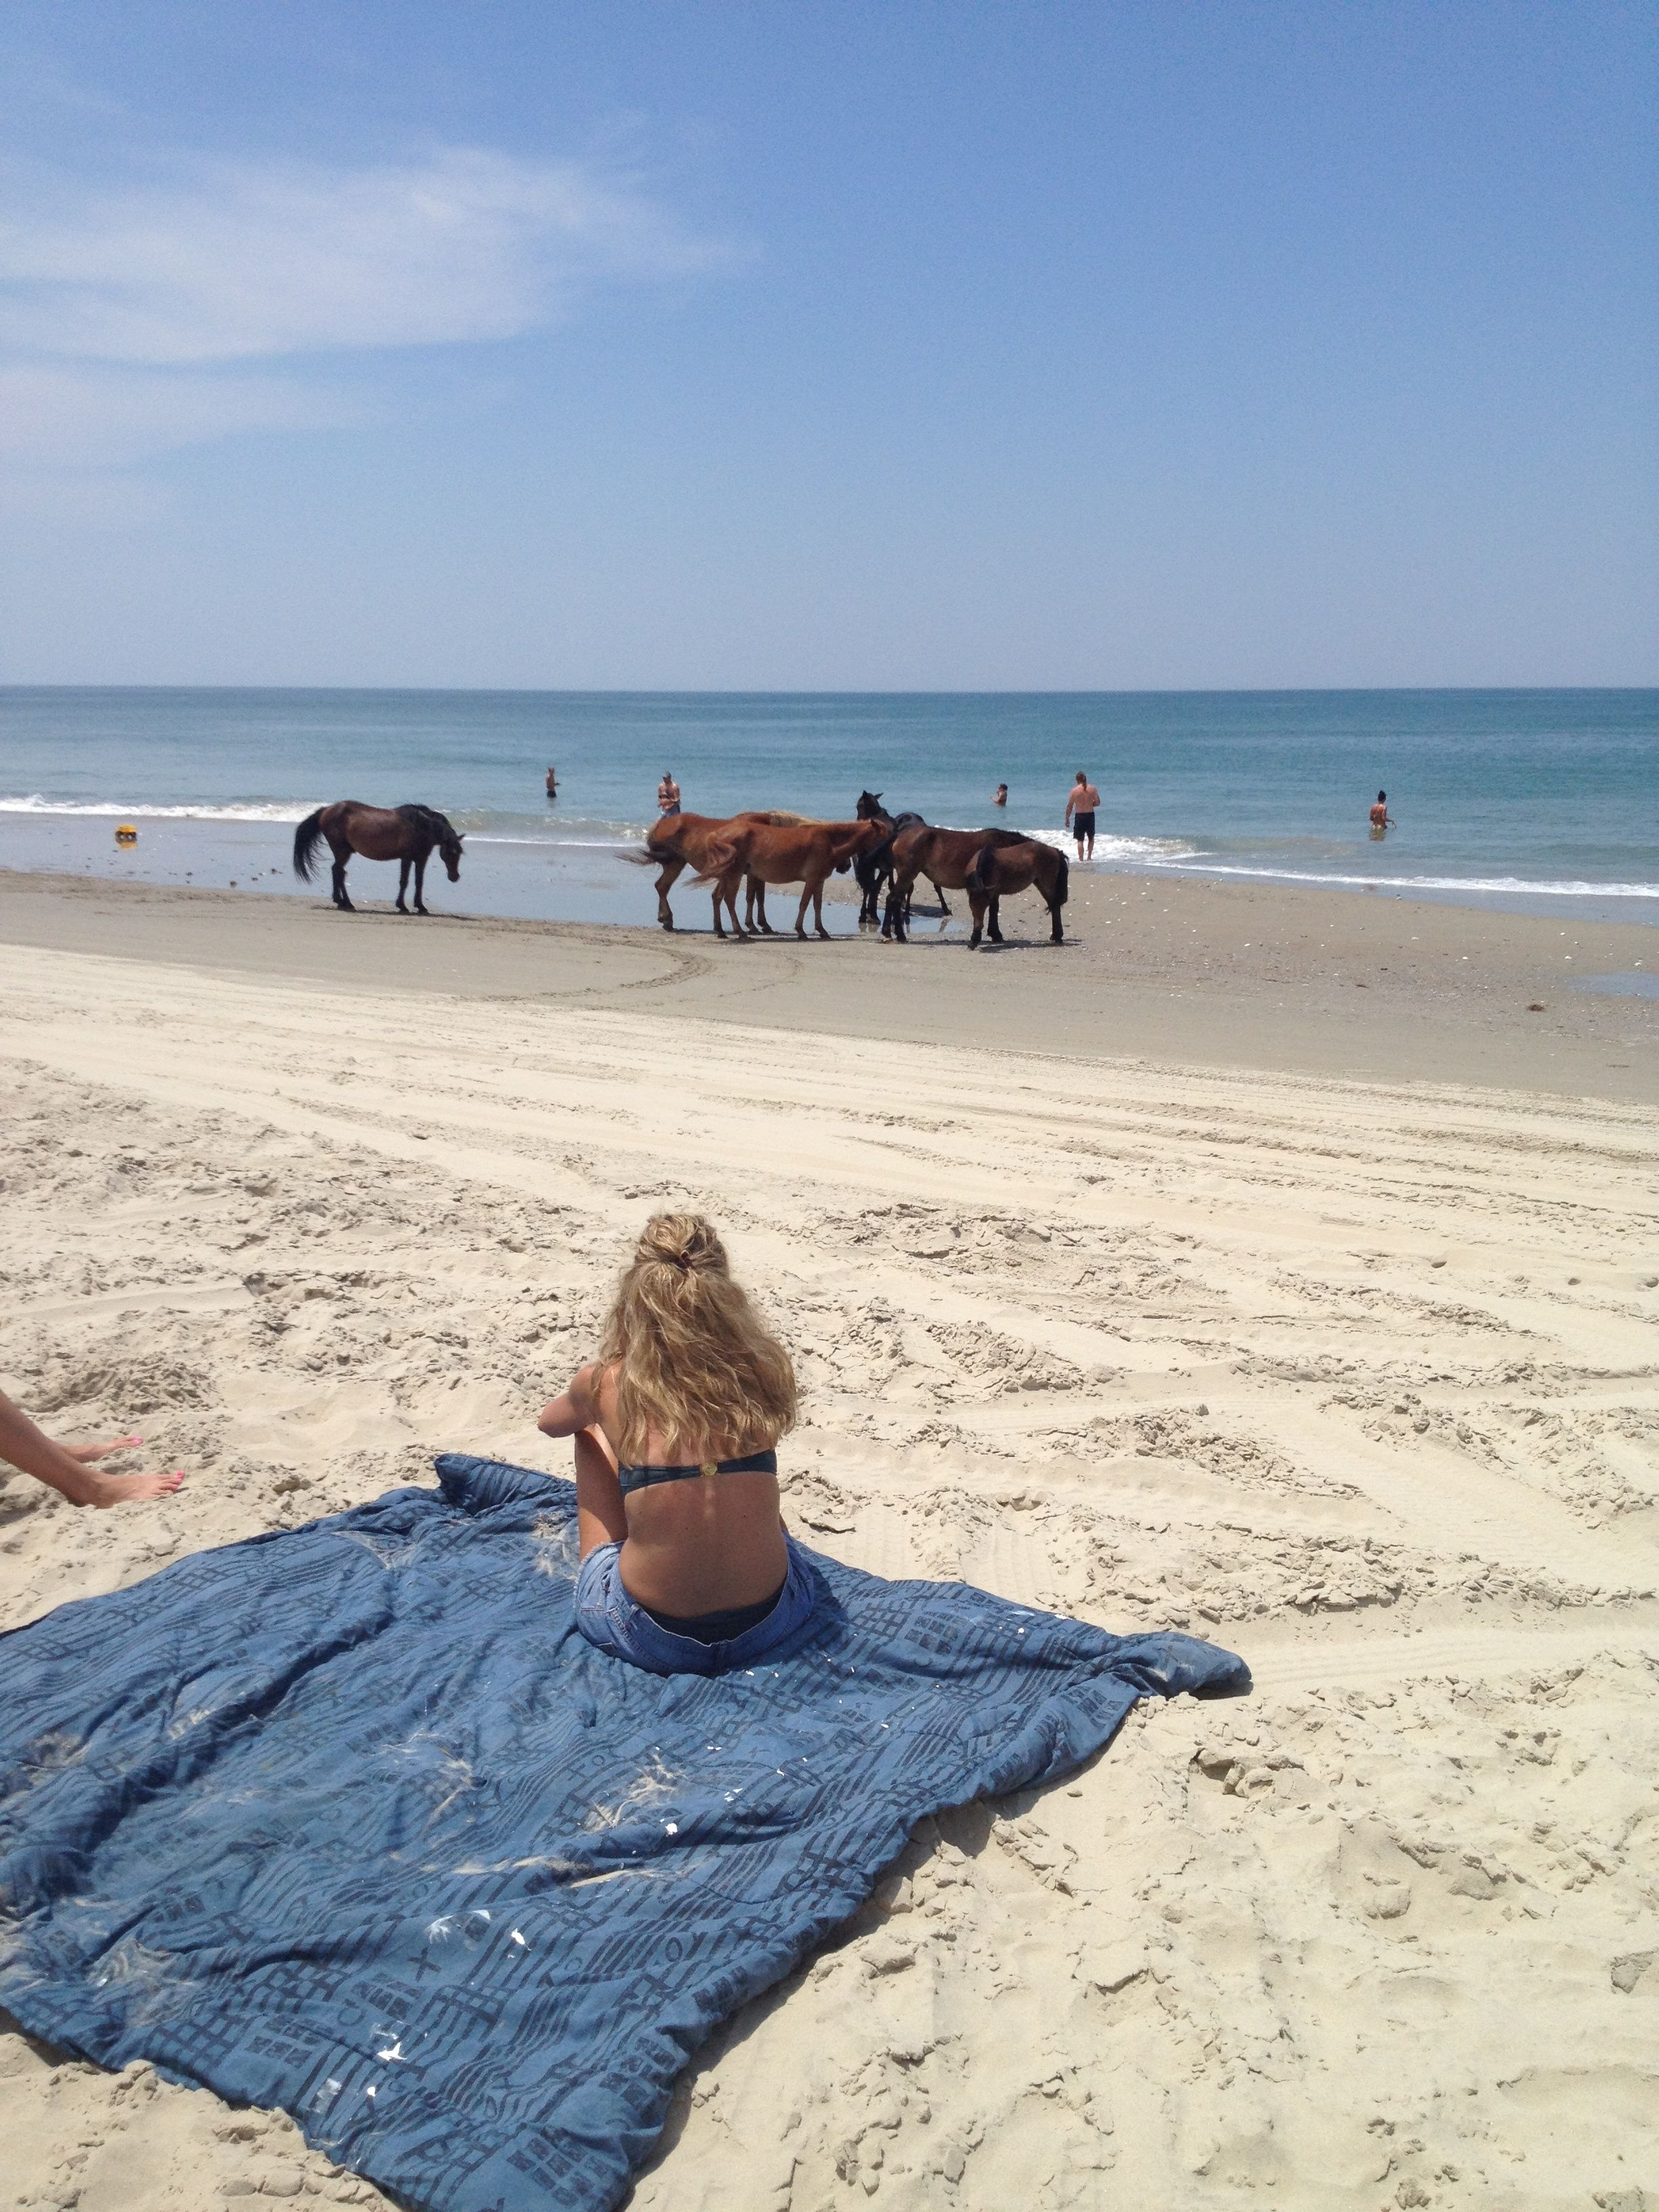 Pin By Michelle Shick On Place I Want To Visit North Carolina Beaches Carolina Beach Outer Banks Nc